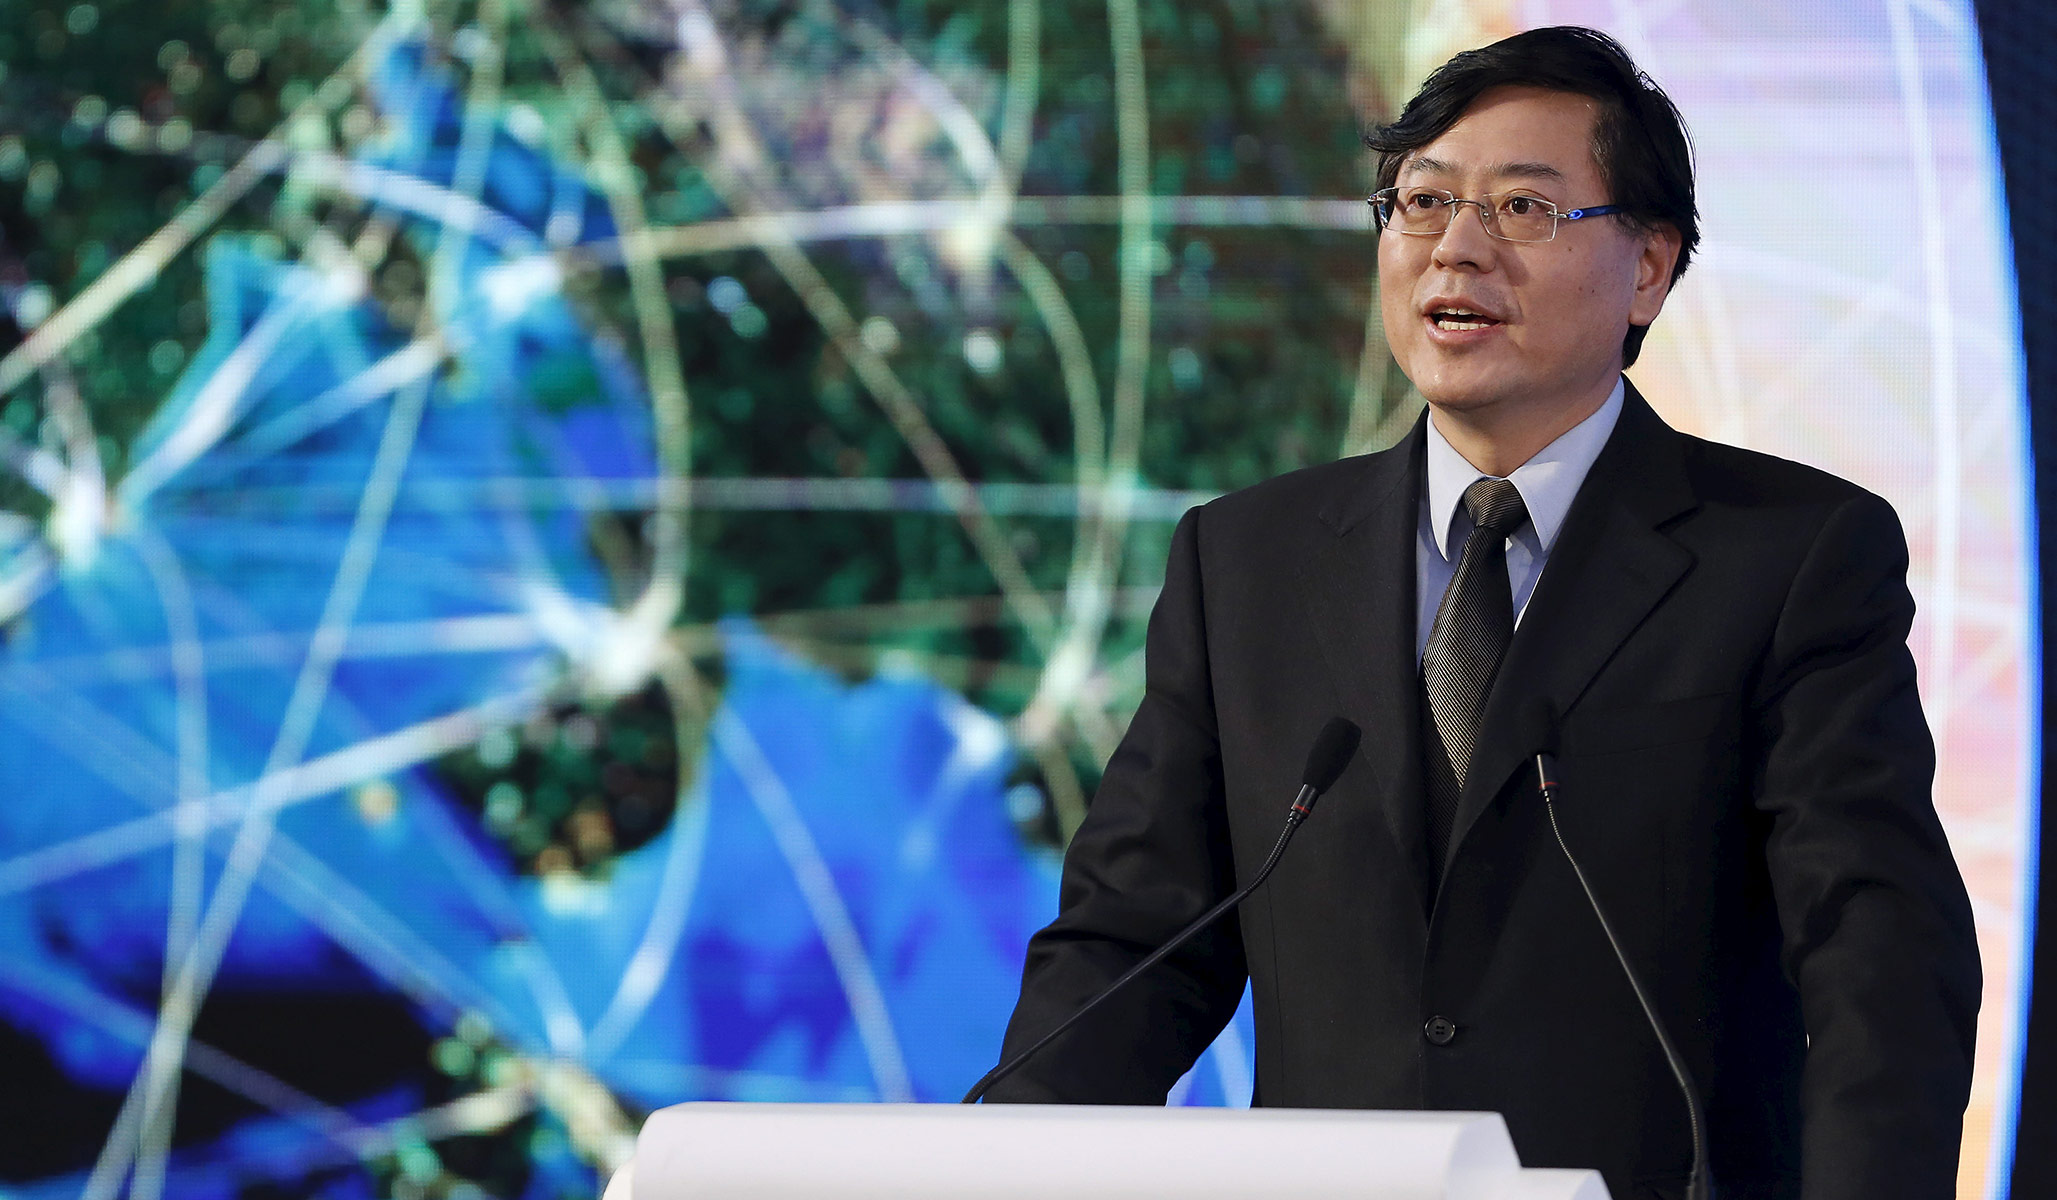 Intel Appoints Yuanqing Yang Despite Ties to Chinese Party-State